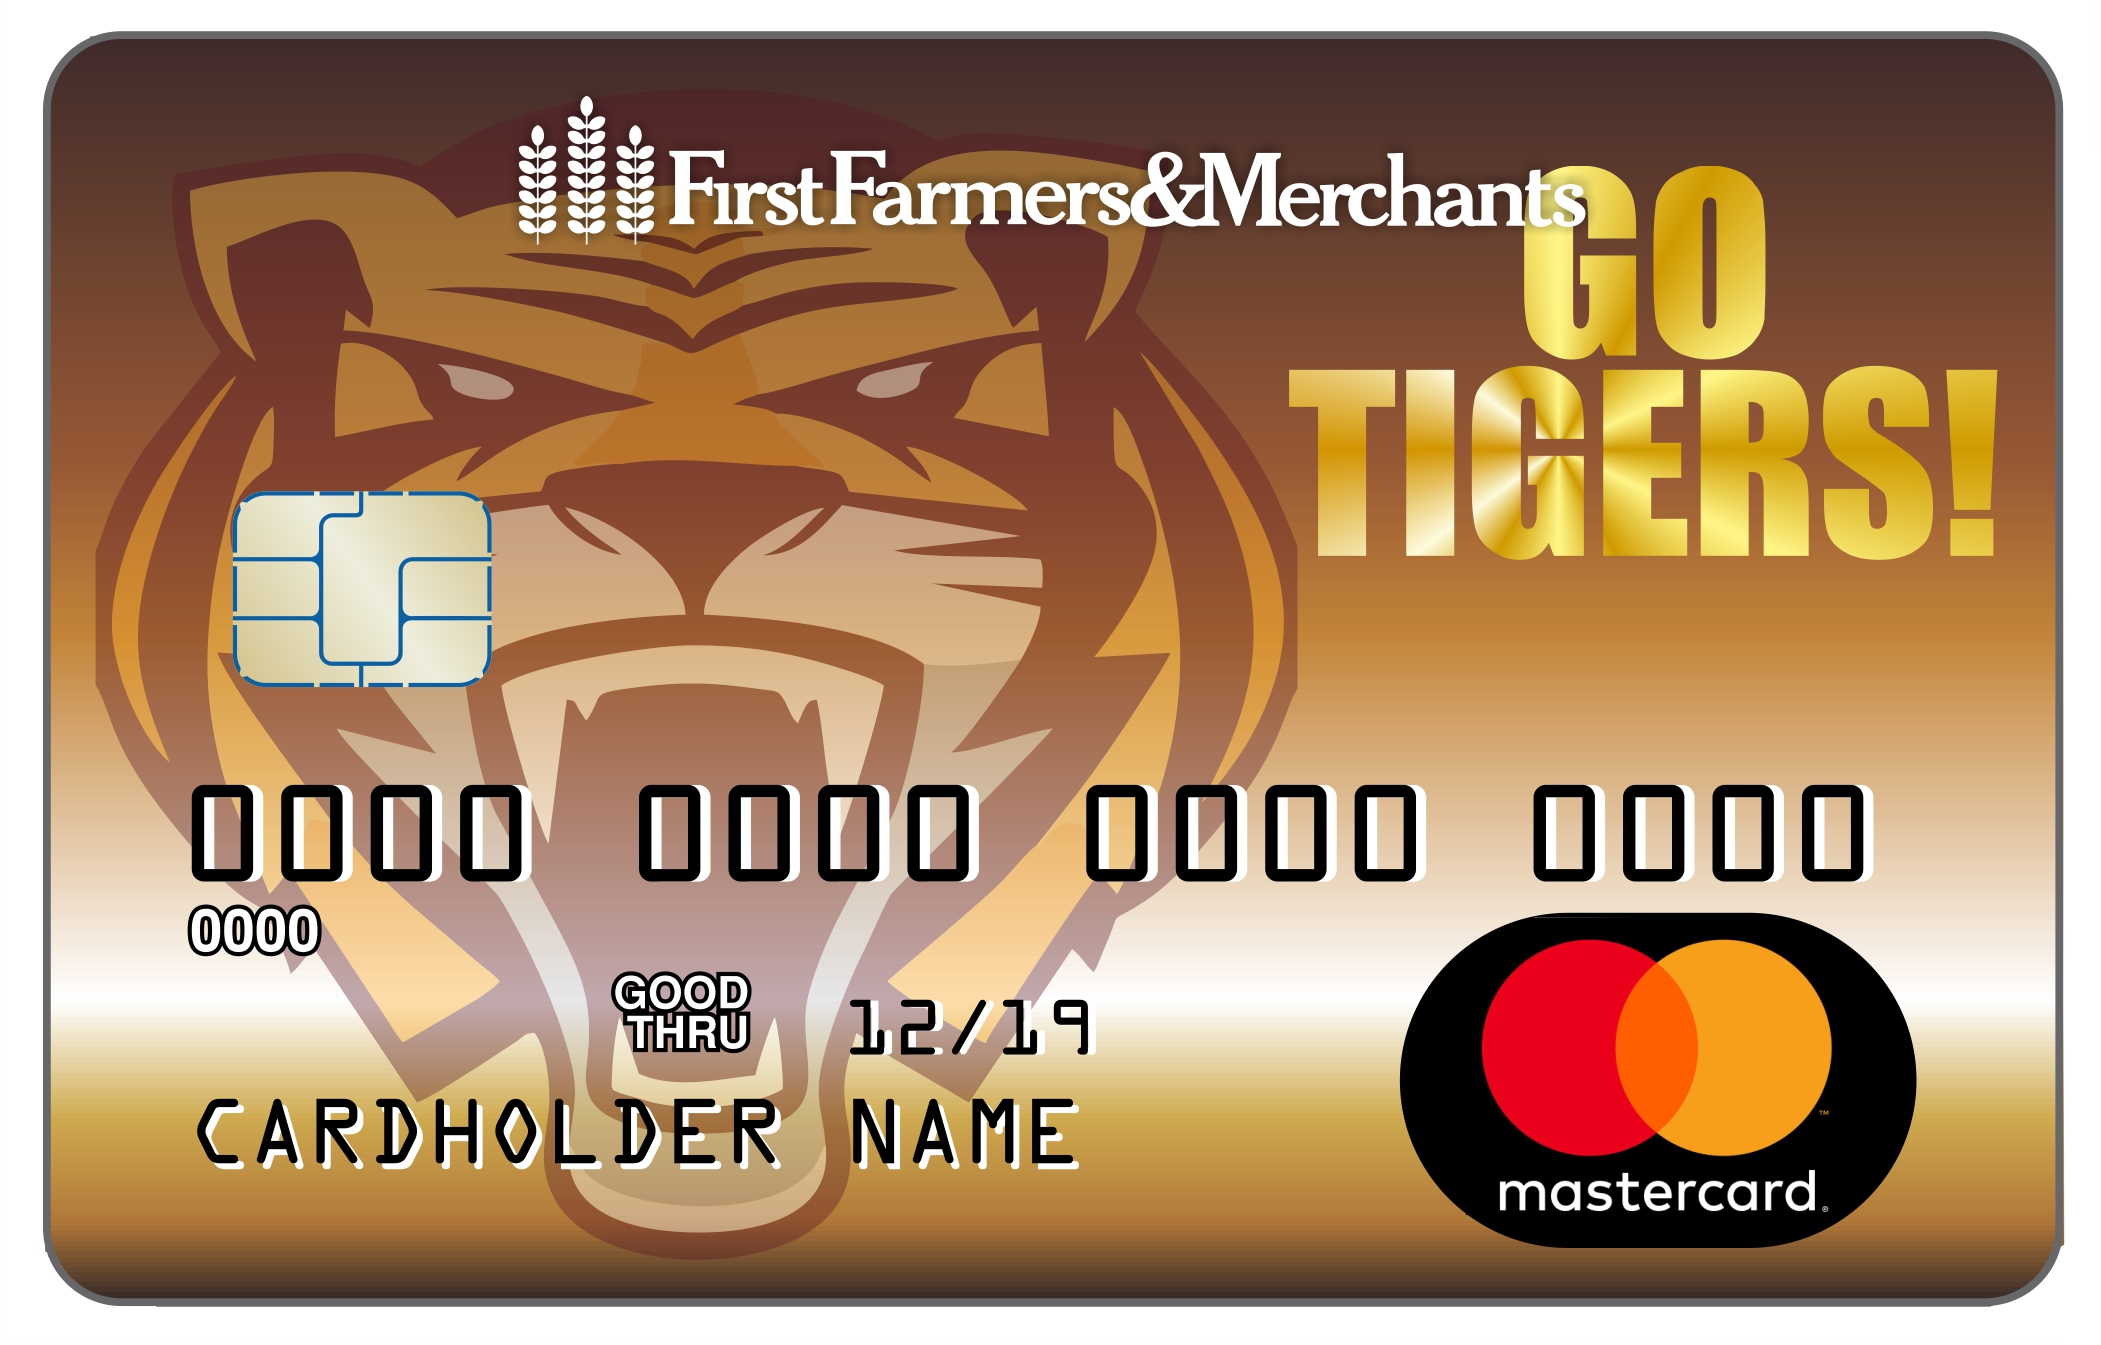 debit card with custom image of Go Tigers on it with a tiger face